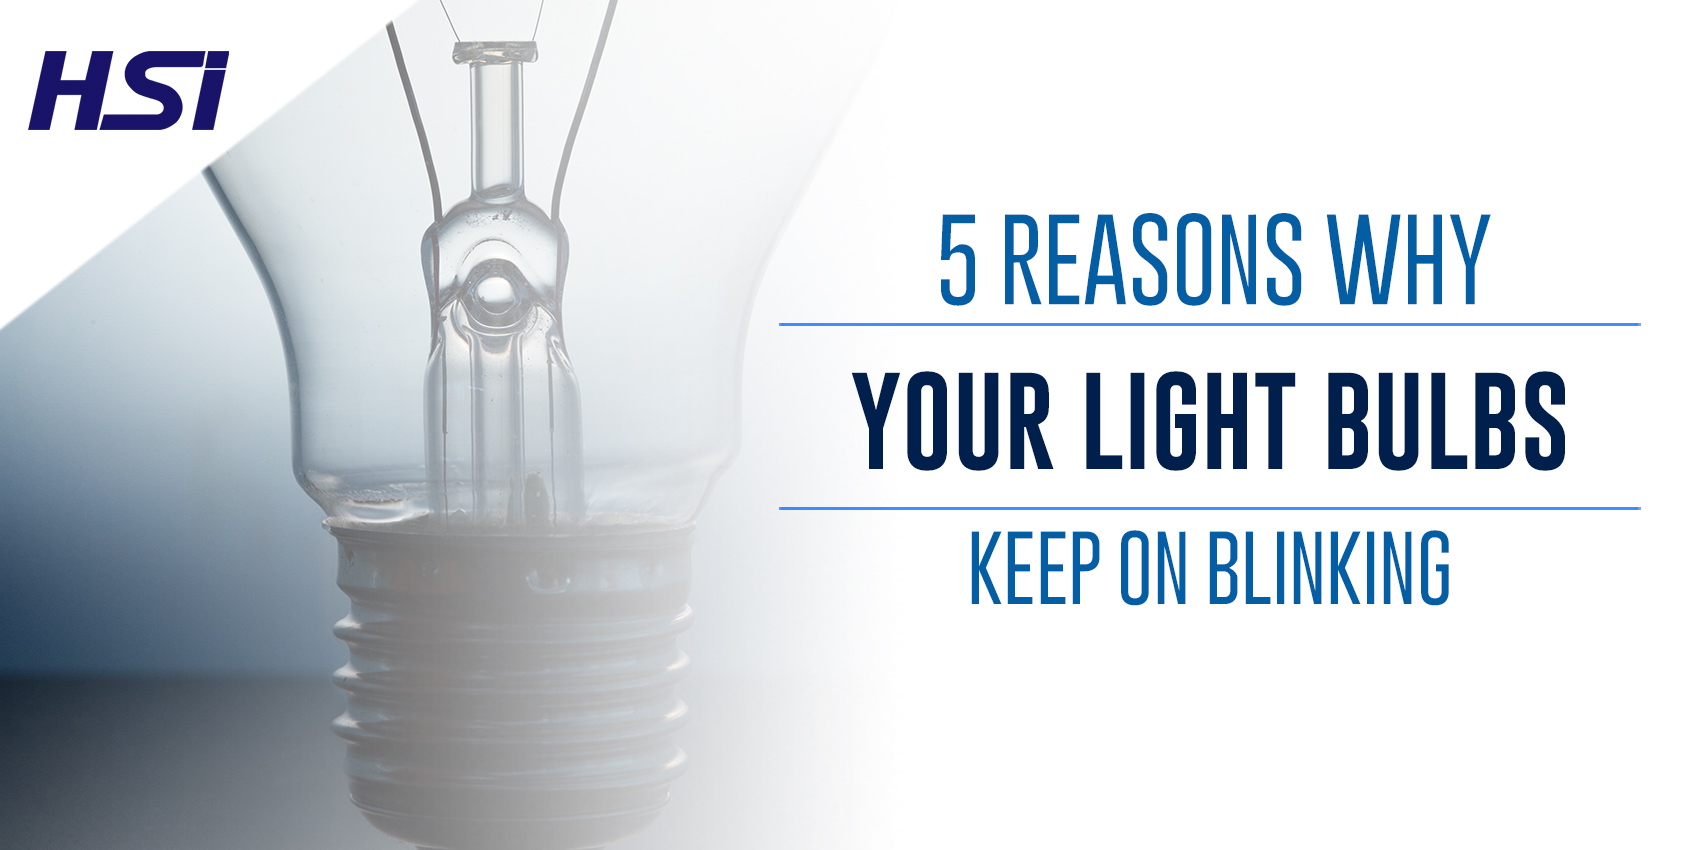 5 Reasons Why Your Light Bulbs Keep On Blinking